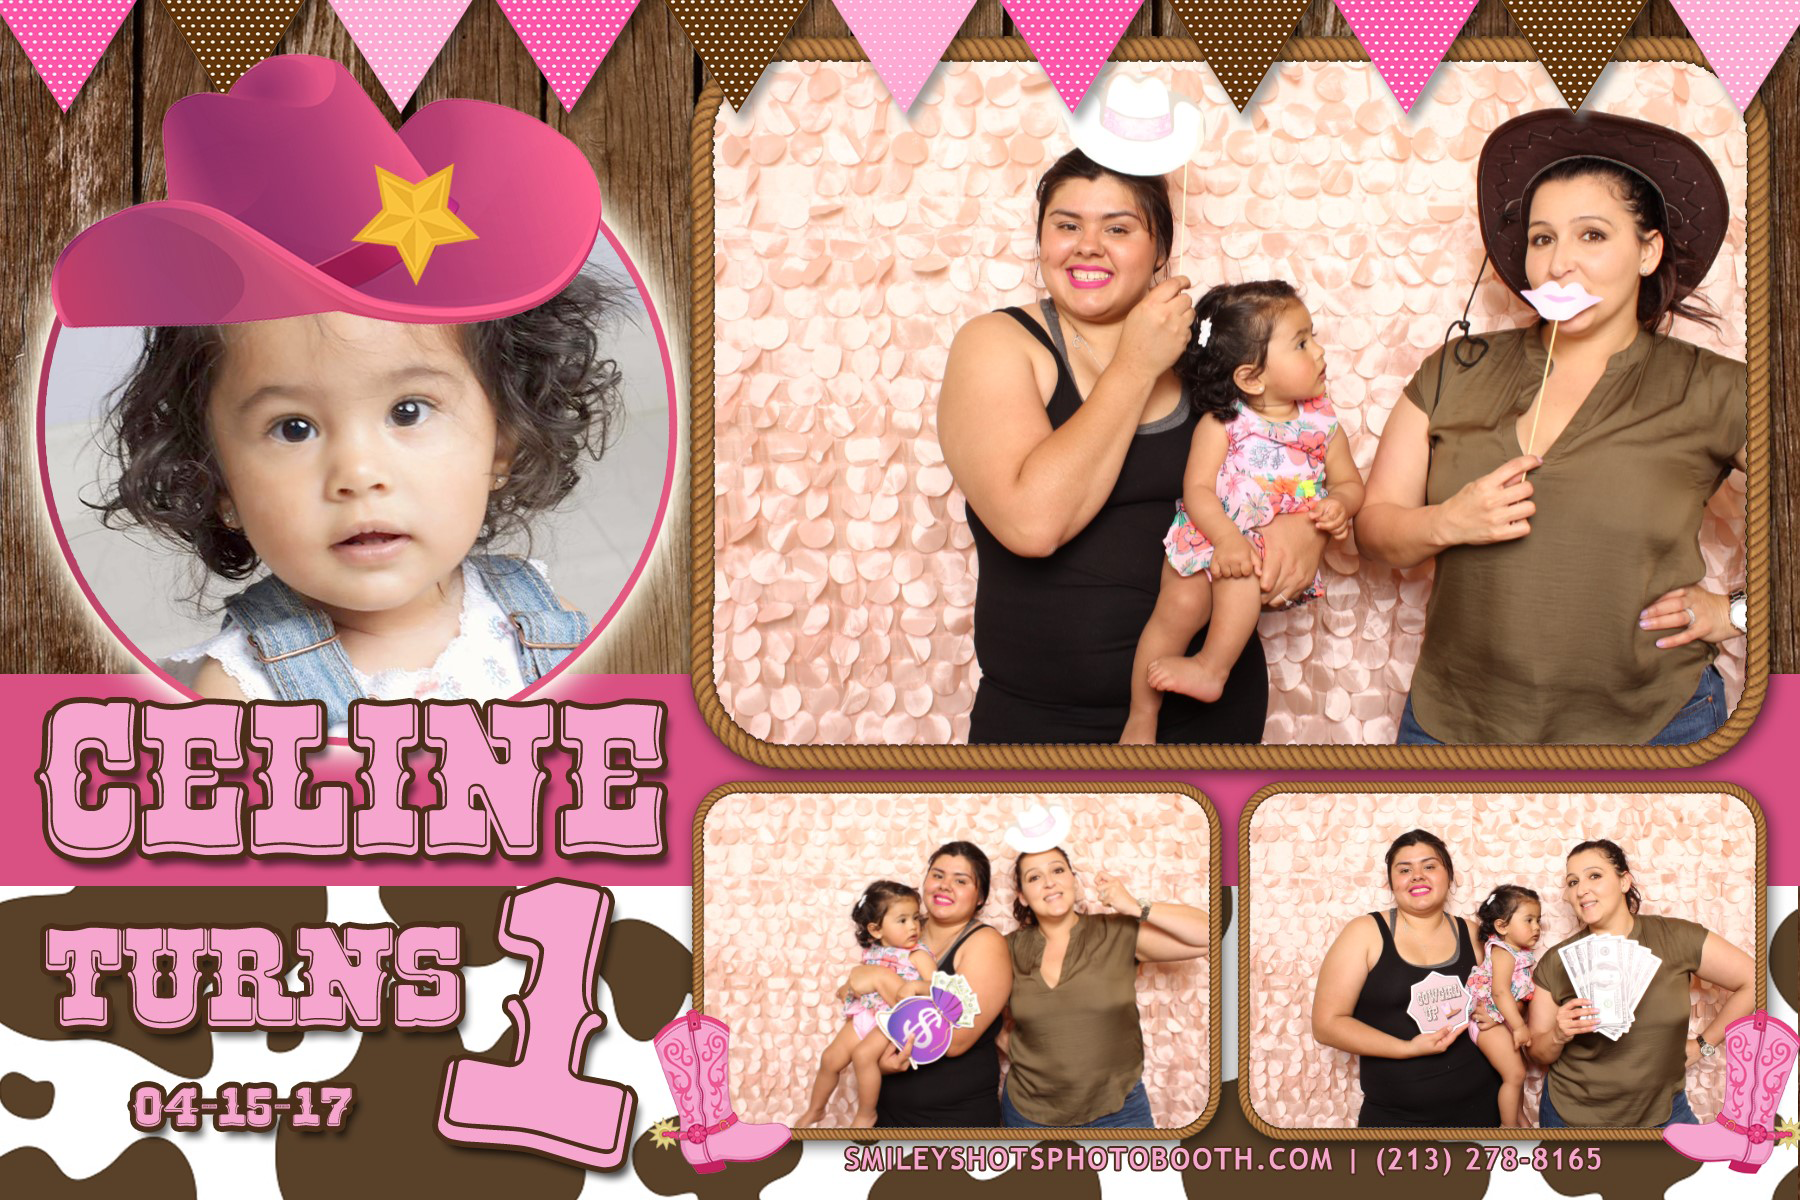 Celine turns 1 Smiley Shots Photo Booth Photobooth (21).png